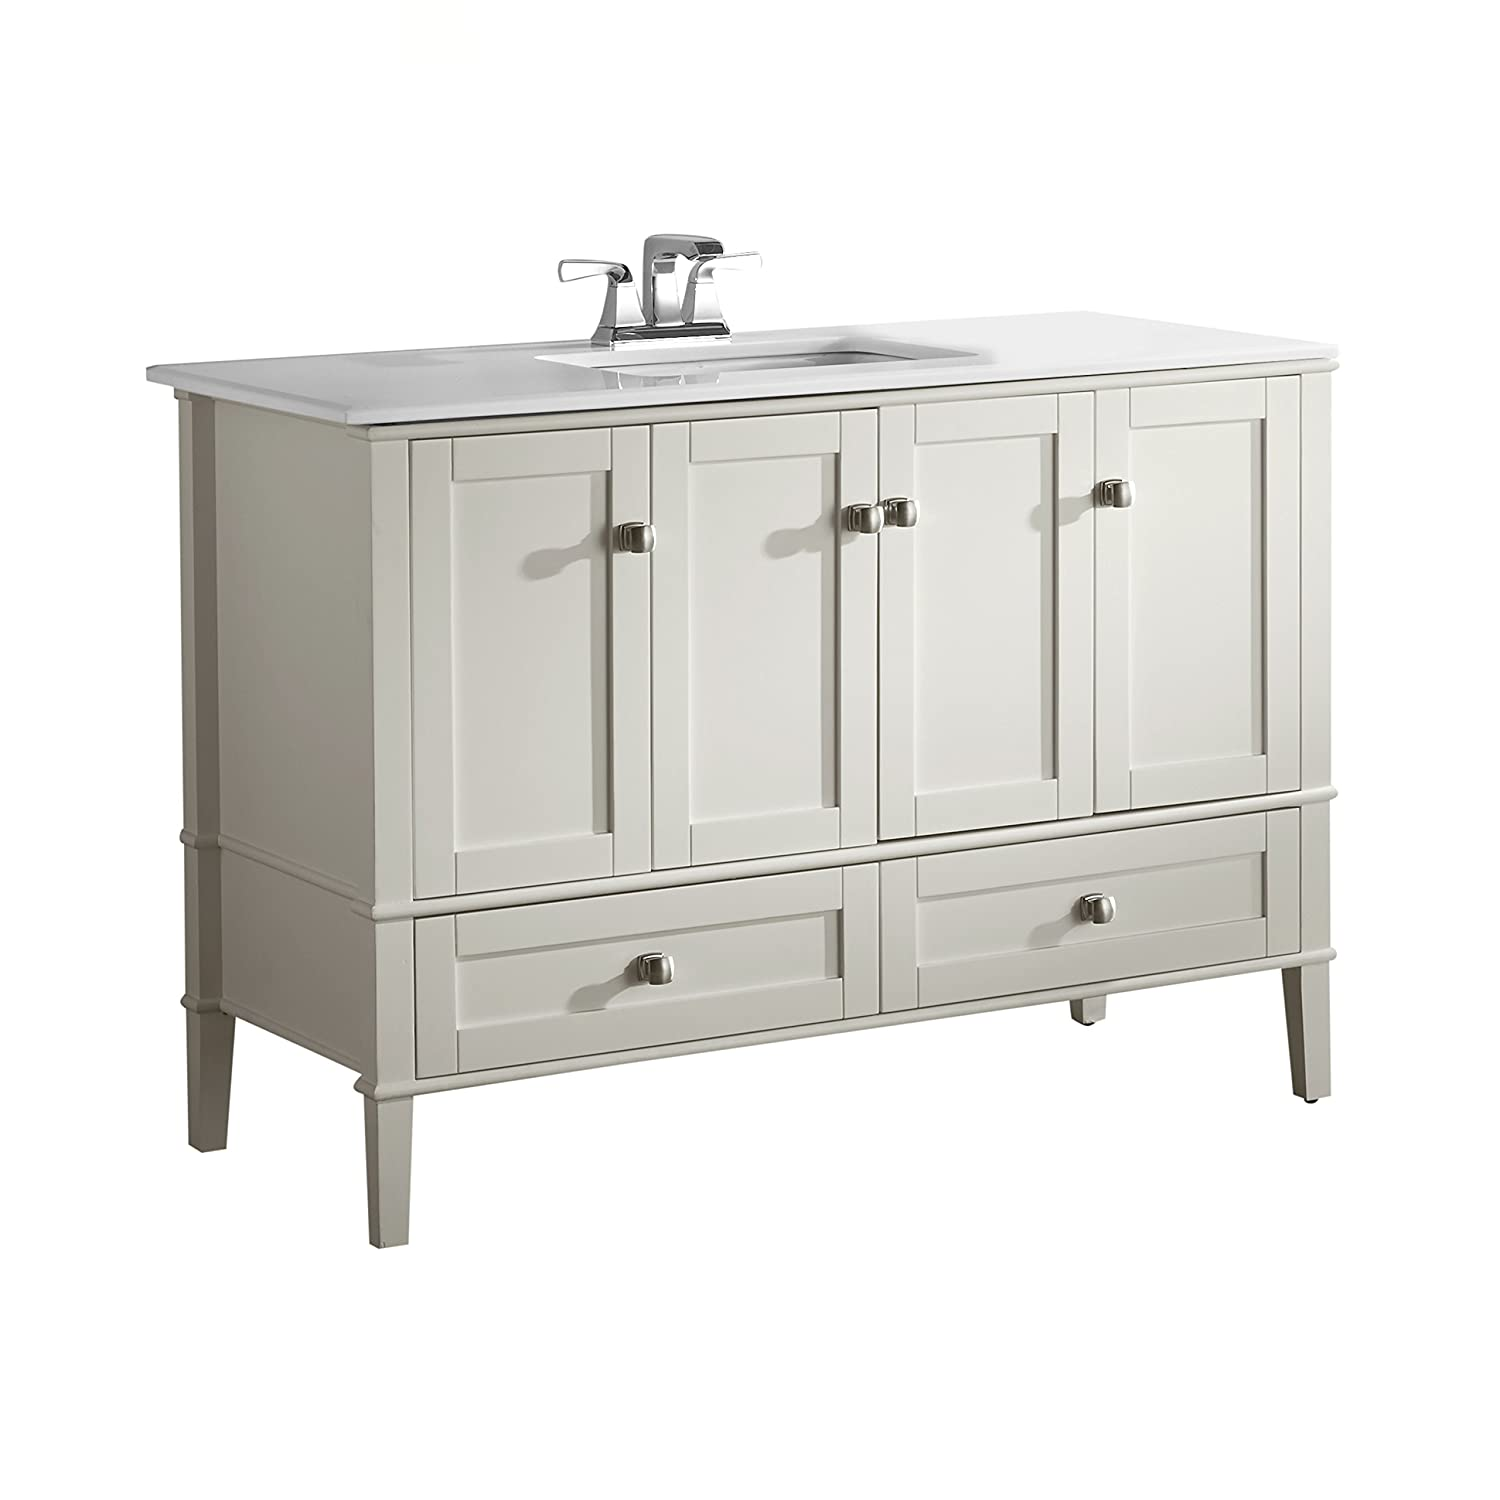 home simpli loft com drawers top bathroom urban vanity bath soft with amazon dp sinks quartz drawer white marble